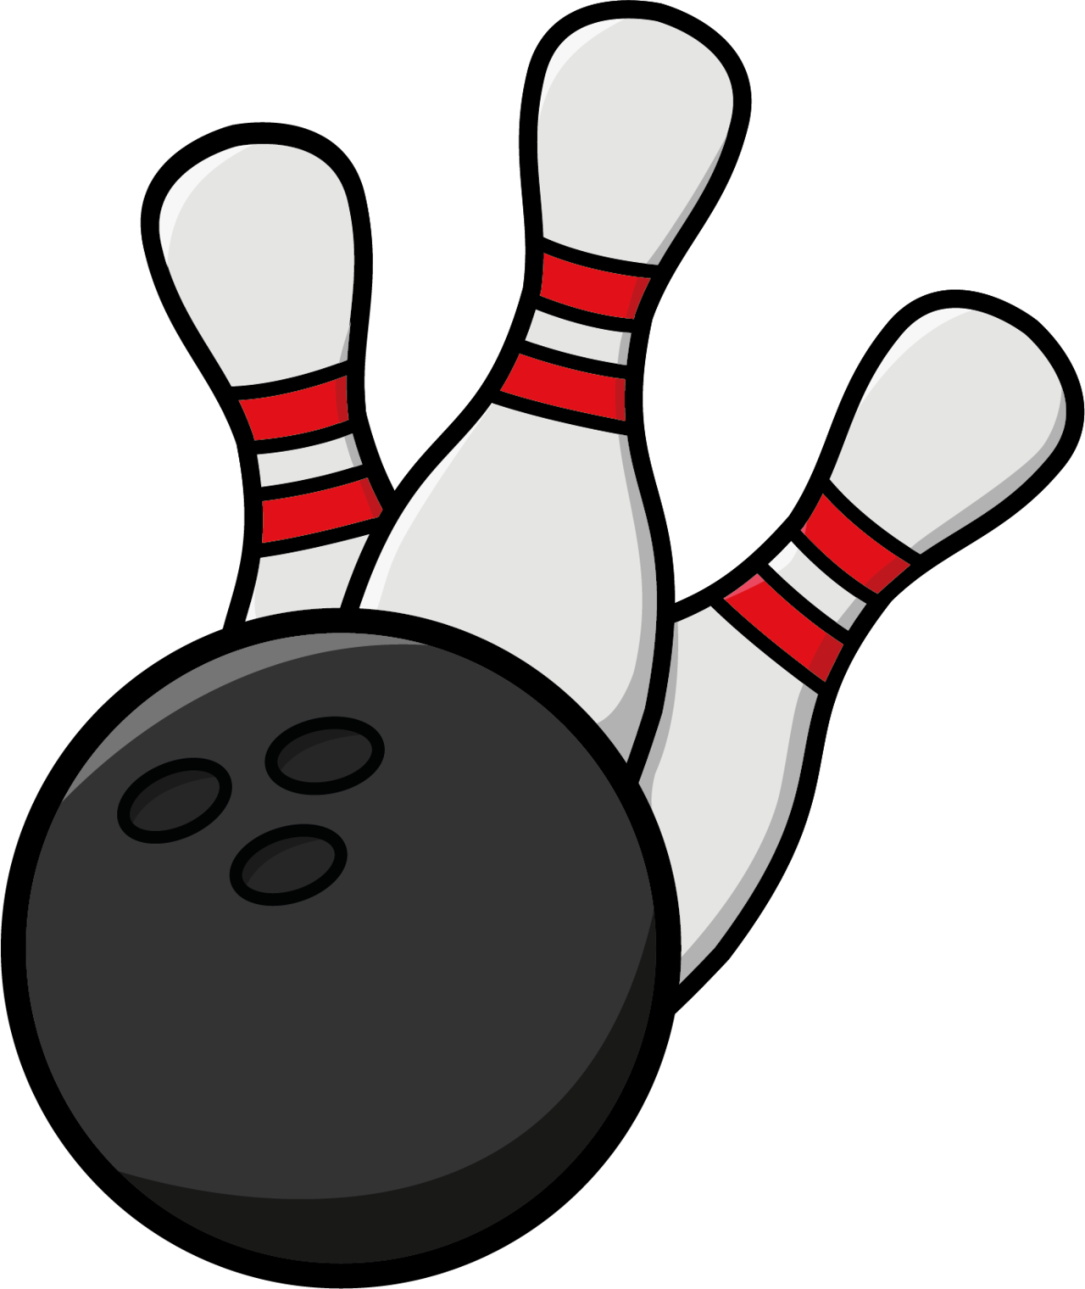 90d1c2439435cc4af63cb3cd0af8f933_bowling-clipart-png-clipart-free-download-clip-art-library-bowling-clipart-png_1280-1520843576801949551203.png